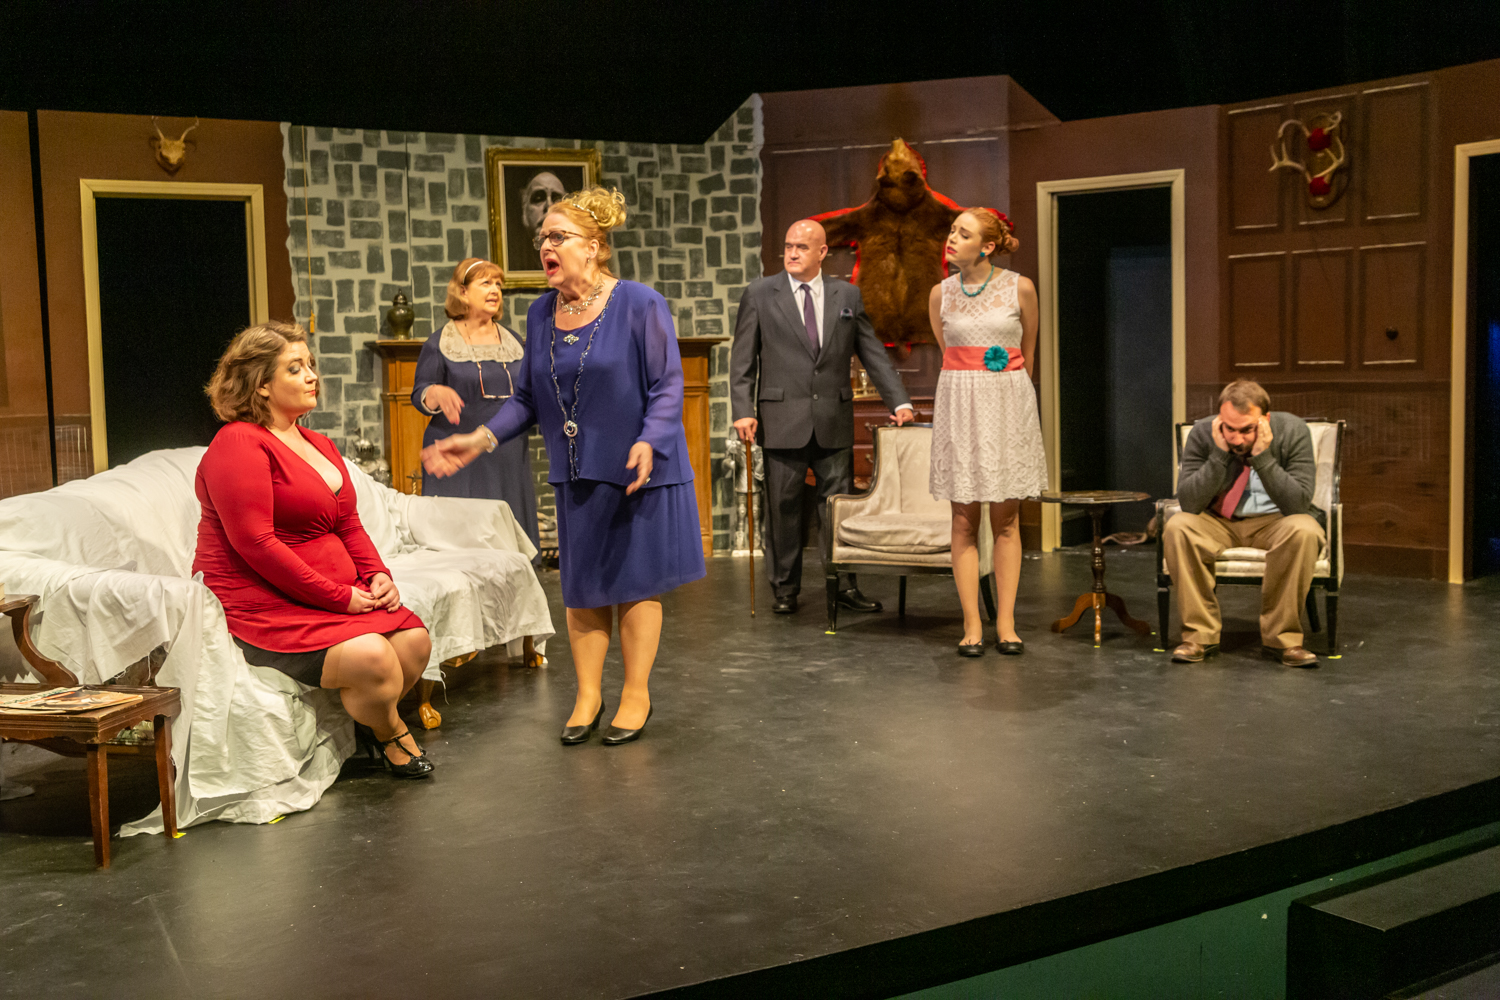 "Mandi Veeder as Rosalind Barstow, Joyce Sponcia as Miss Barnsdale, Tammy Vrba as Lady Barbara Fenwick, Mike Crowley as Orion Leduc, Brenda Poppy as Dora Dunstock,and Jim Donaldson as Jeff Barnett, from left, in a scene from Waukesha Civic Theatre's ""Why Bump Off Barnaby?""  Photos by Van James Photography"